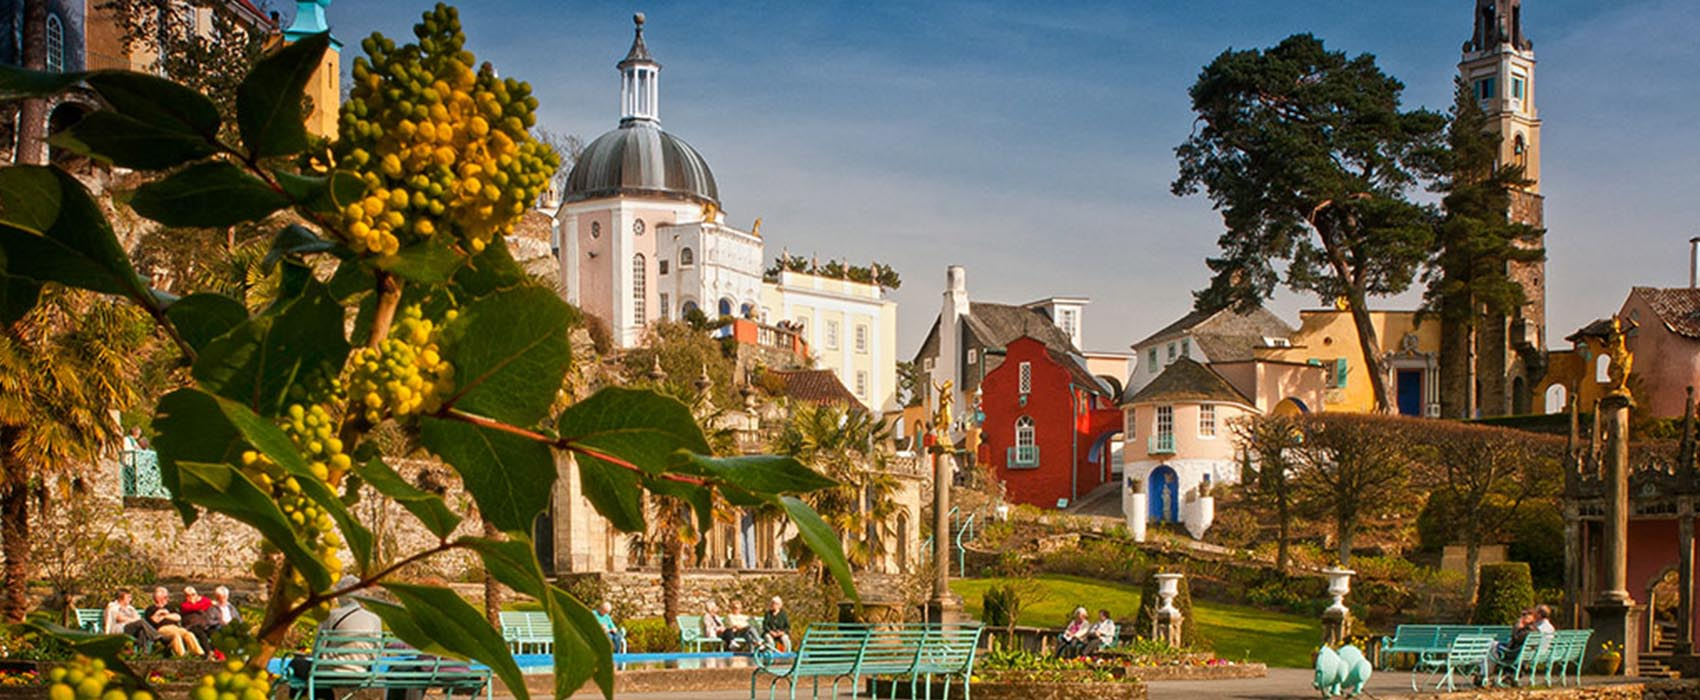 Portmeirion North Wales, Things to do in North Wales when staying at Abercelyn, Bala, Snowdonia